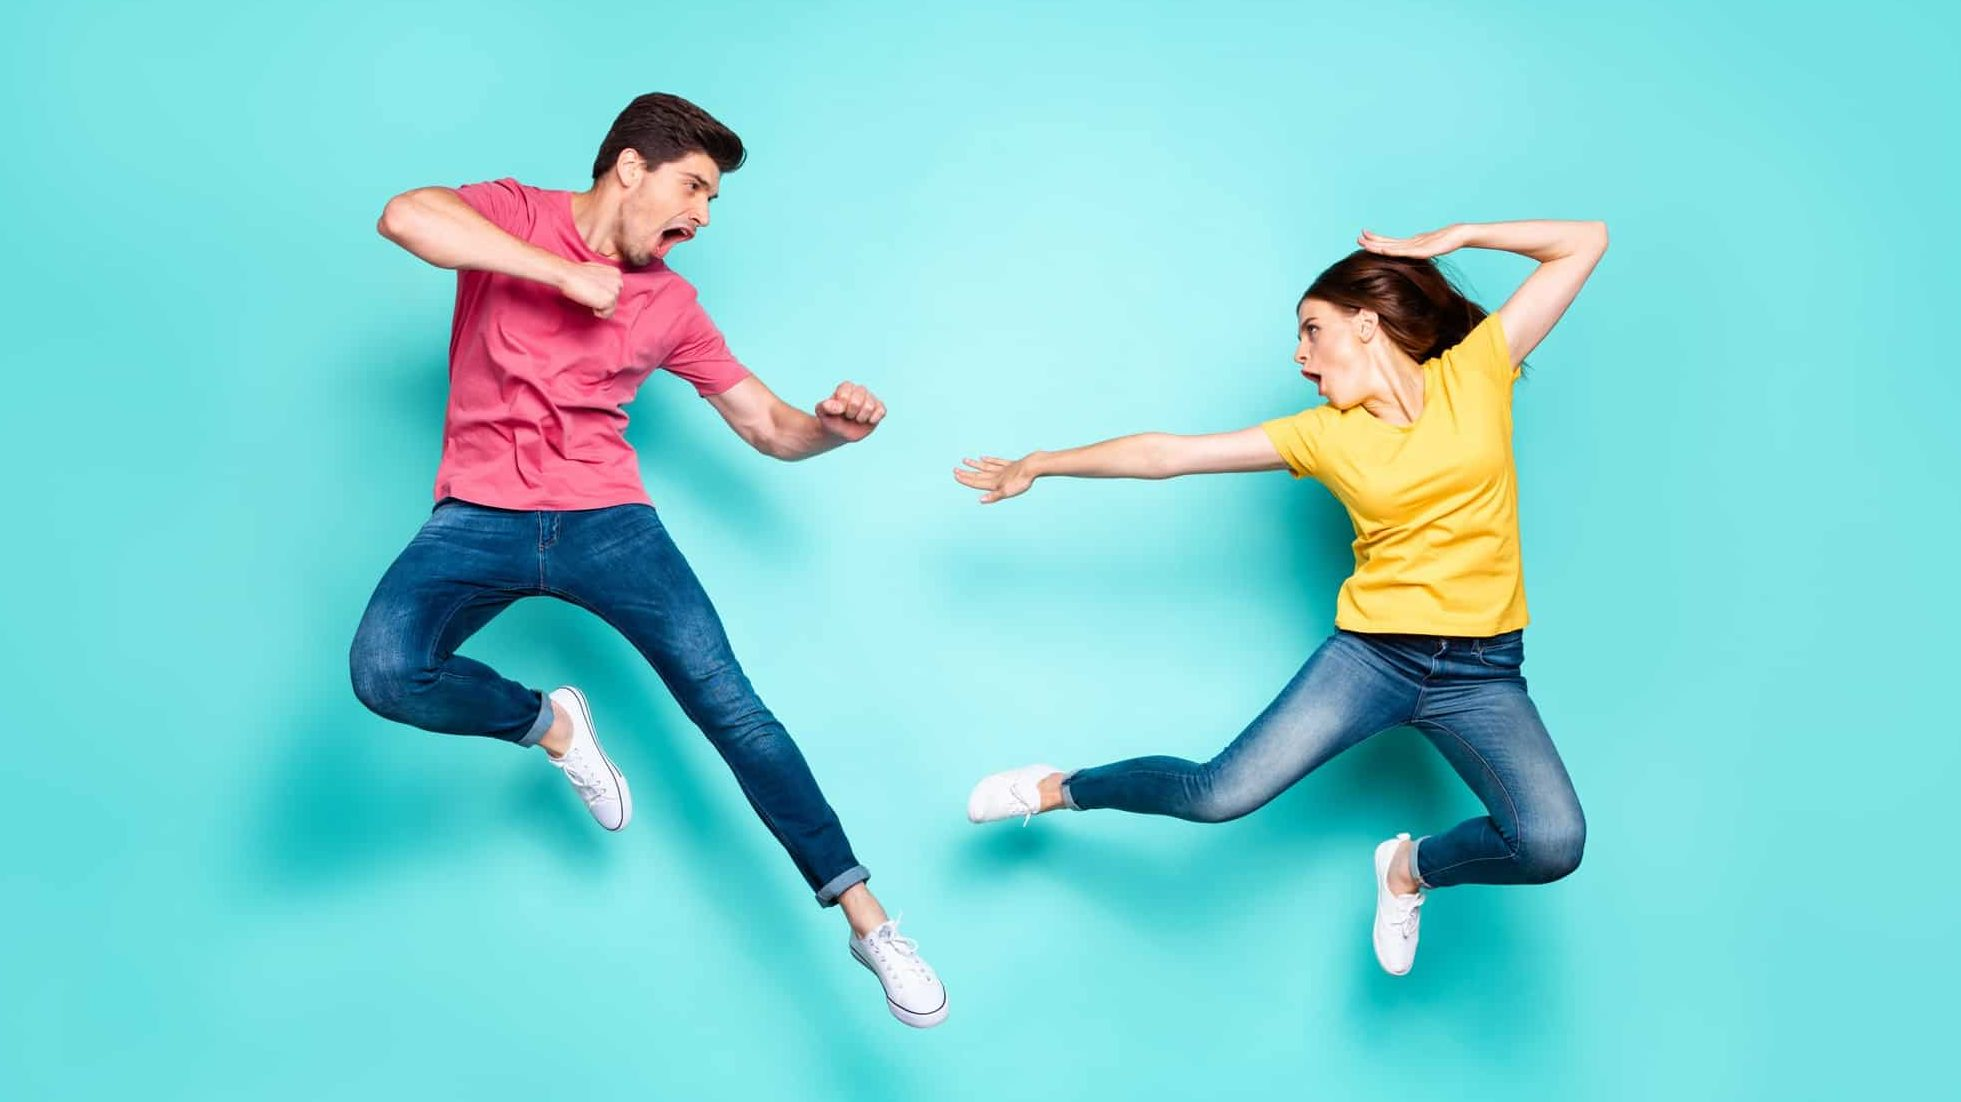 Two people jump in the air in a fighting stance, indicating a battle between rival ASX shares